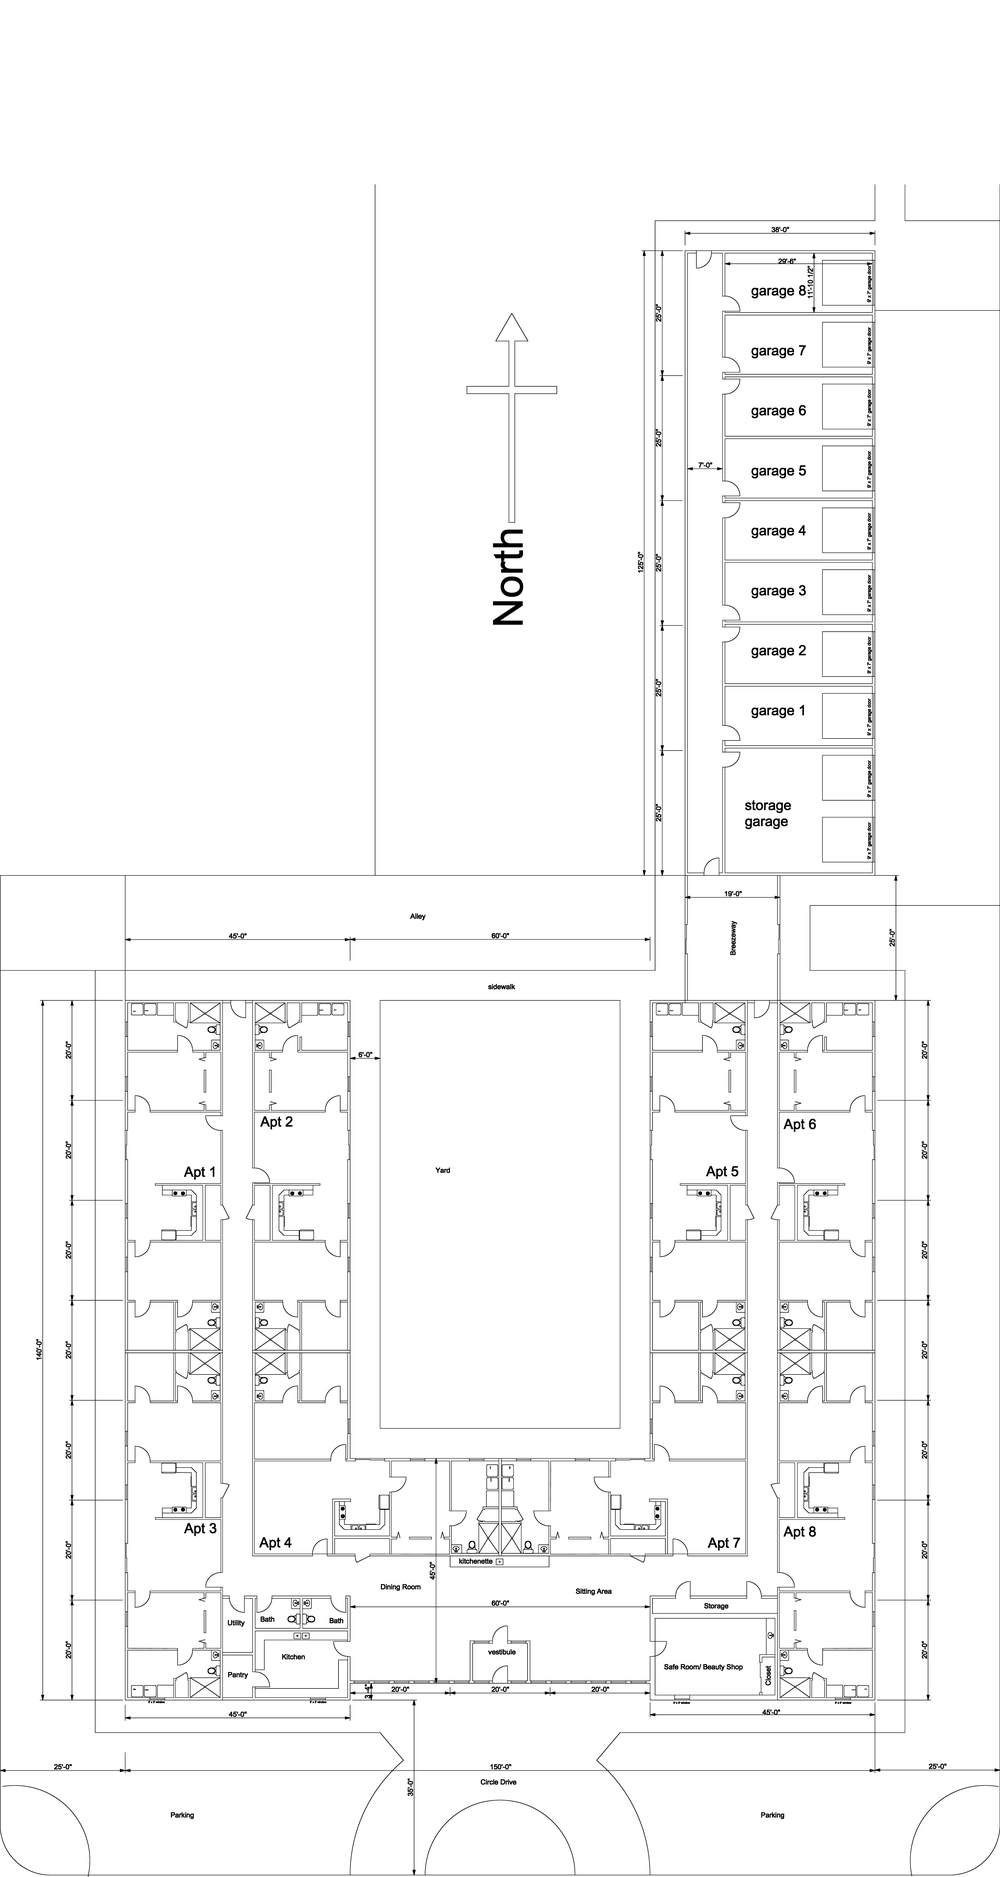 Floorplan of Stockton Estates, Stockton Kansas